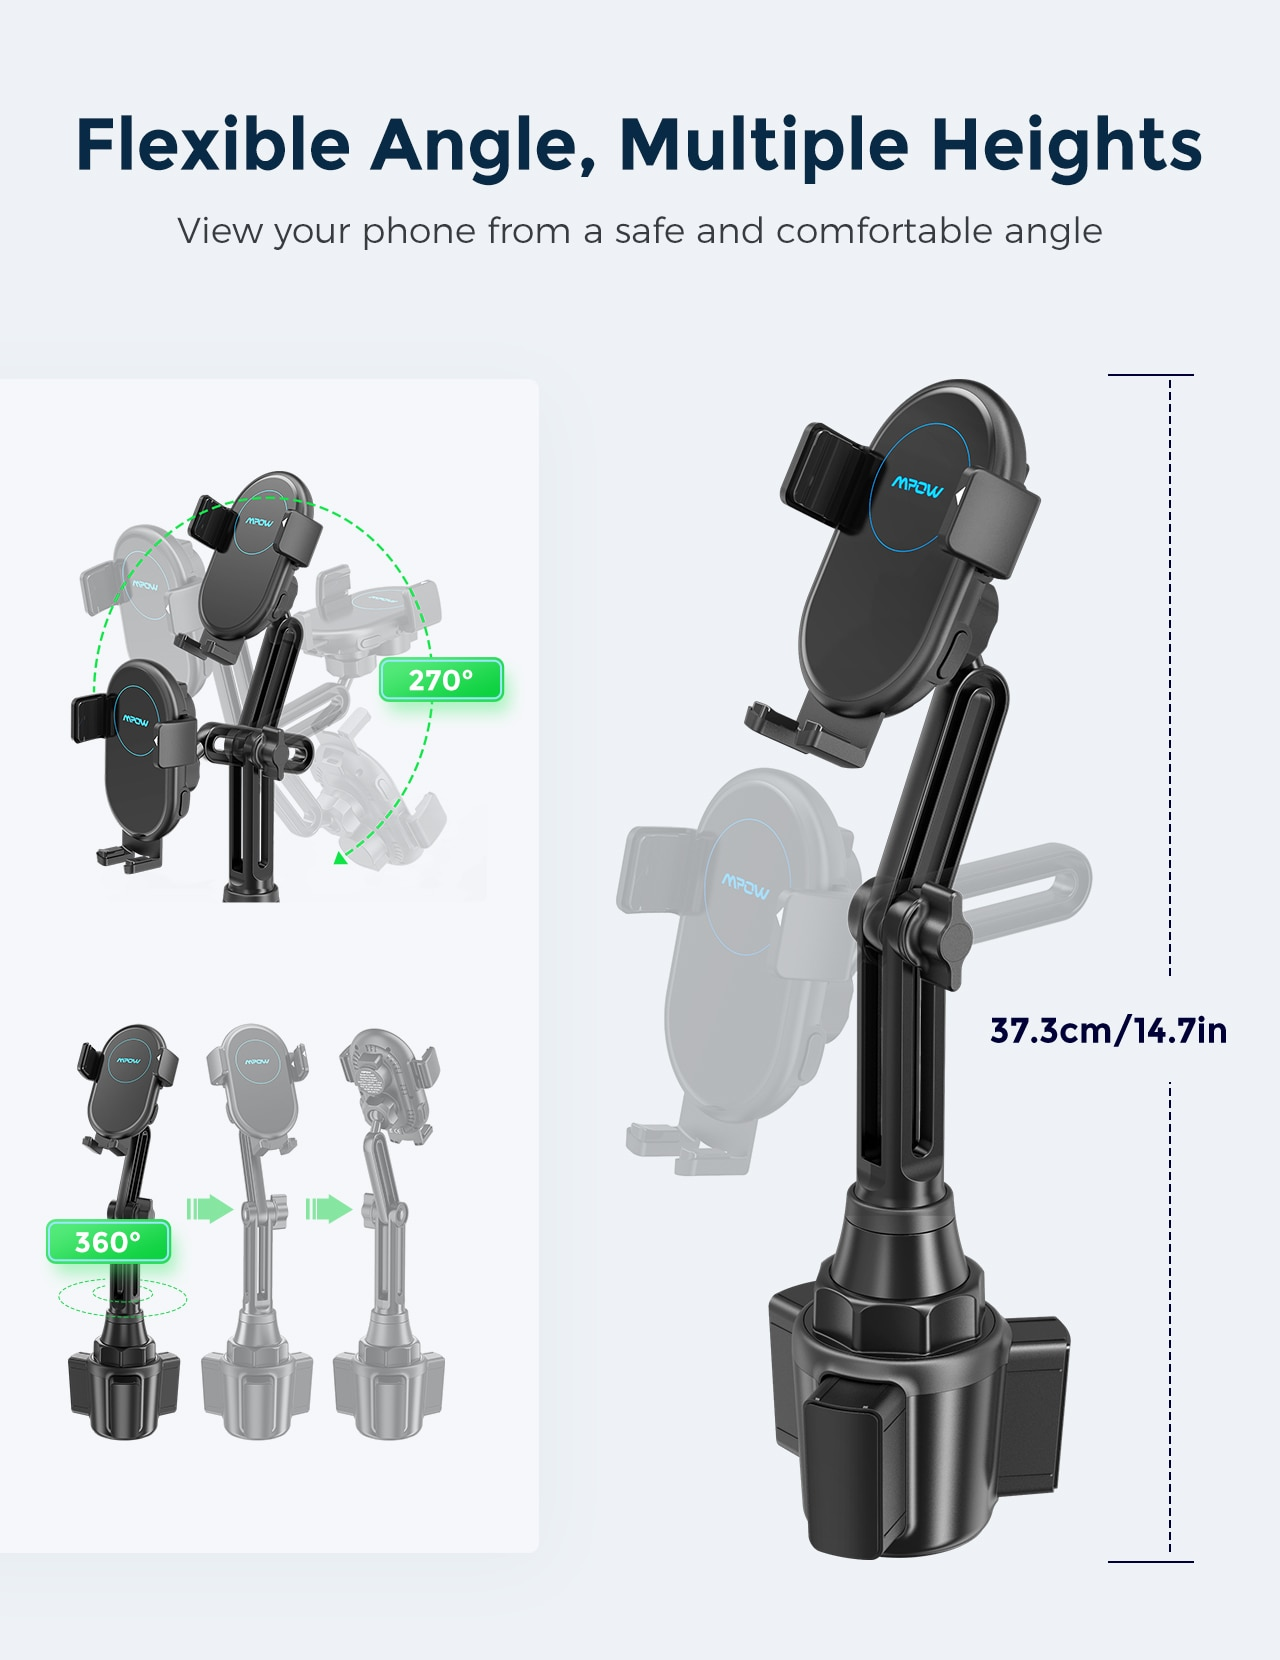 H97ff4c3c8a5b4b838d11e1c94be7a8deW - MPOW CA160 Wireless Car Charger 15W Auto-clamping Qi Fast Charging Car Mount with Built-in Battery Cup Holder Vent Phone Holder